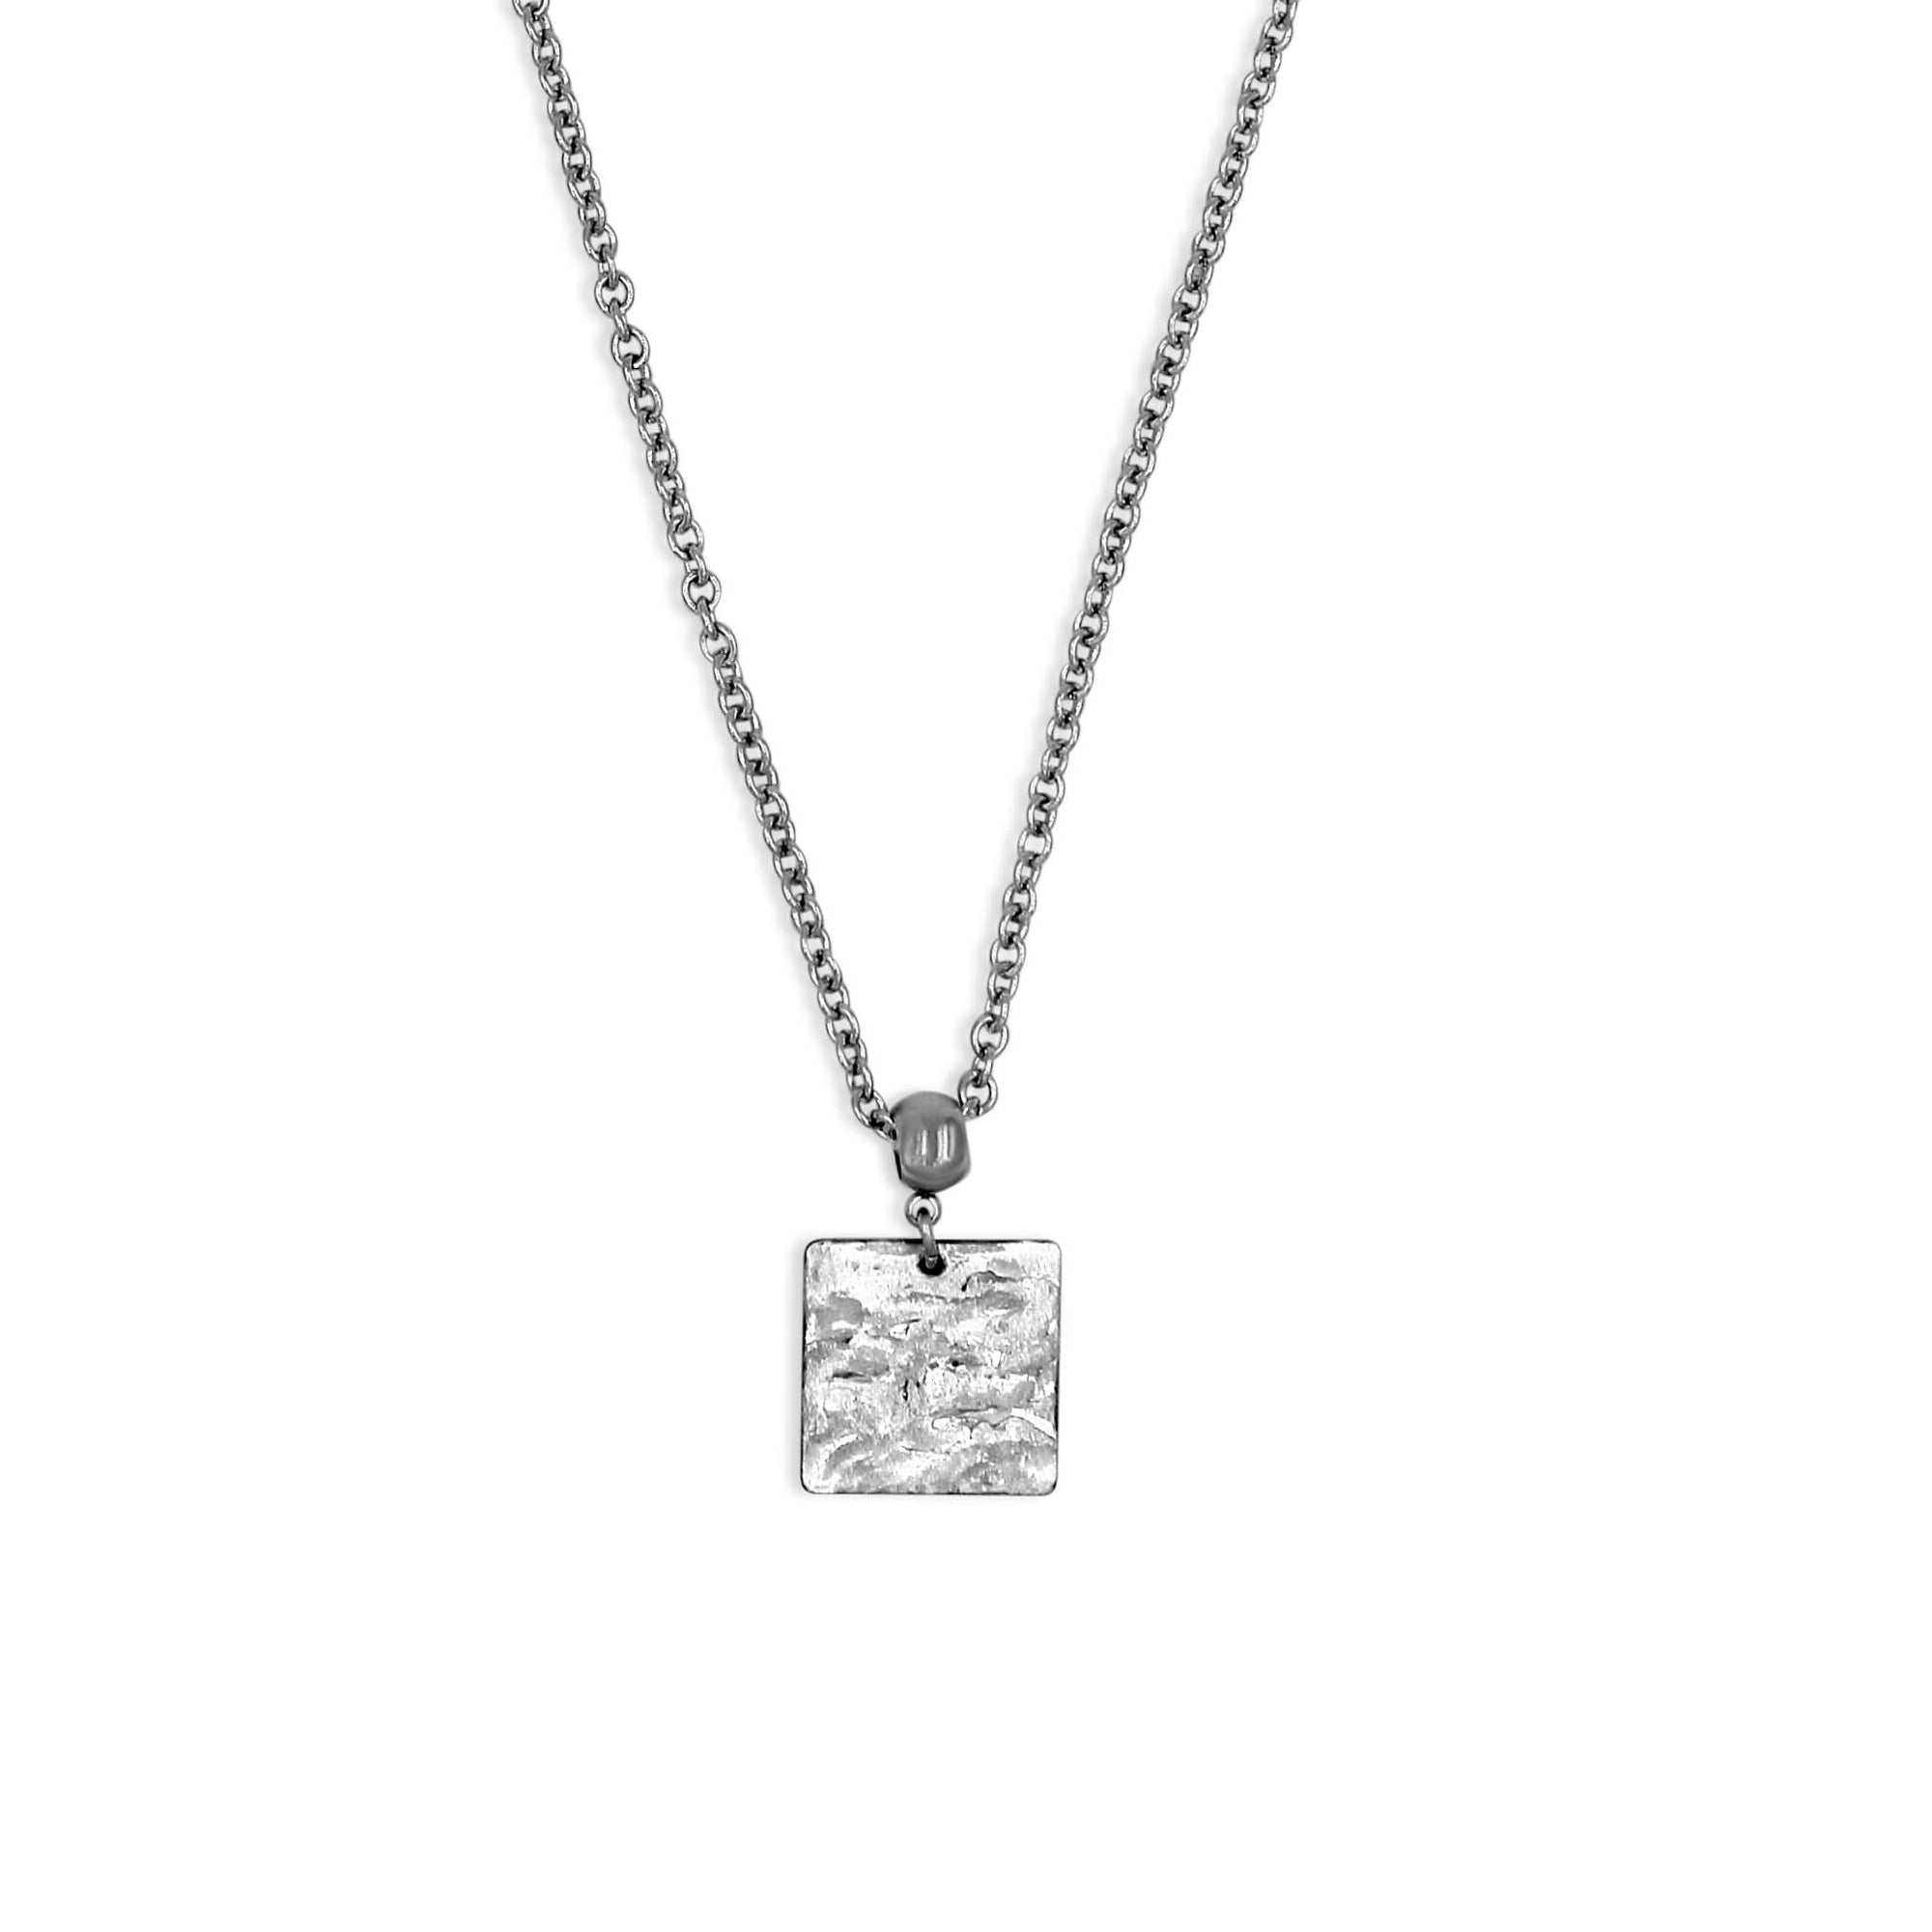 Silver Square Pendant Necklace - Creative Jewelry by Marcia - Asymmetrical Jewelry - Timeless Jewelry